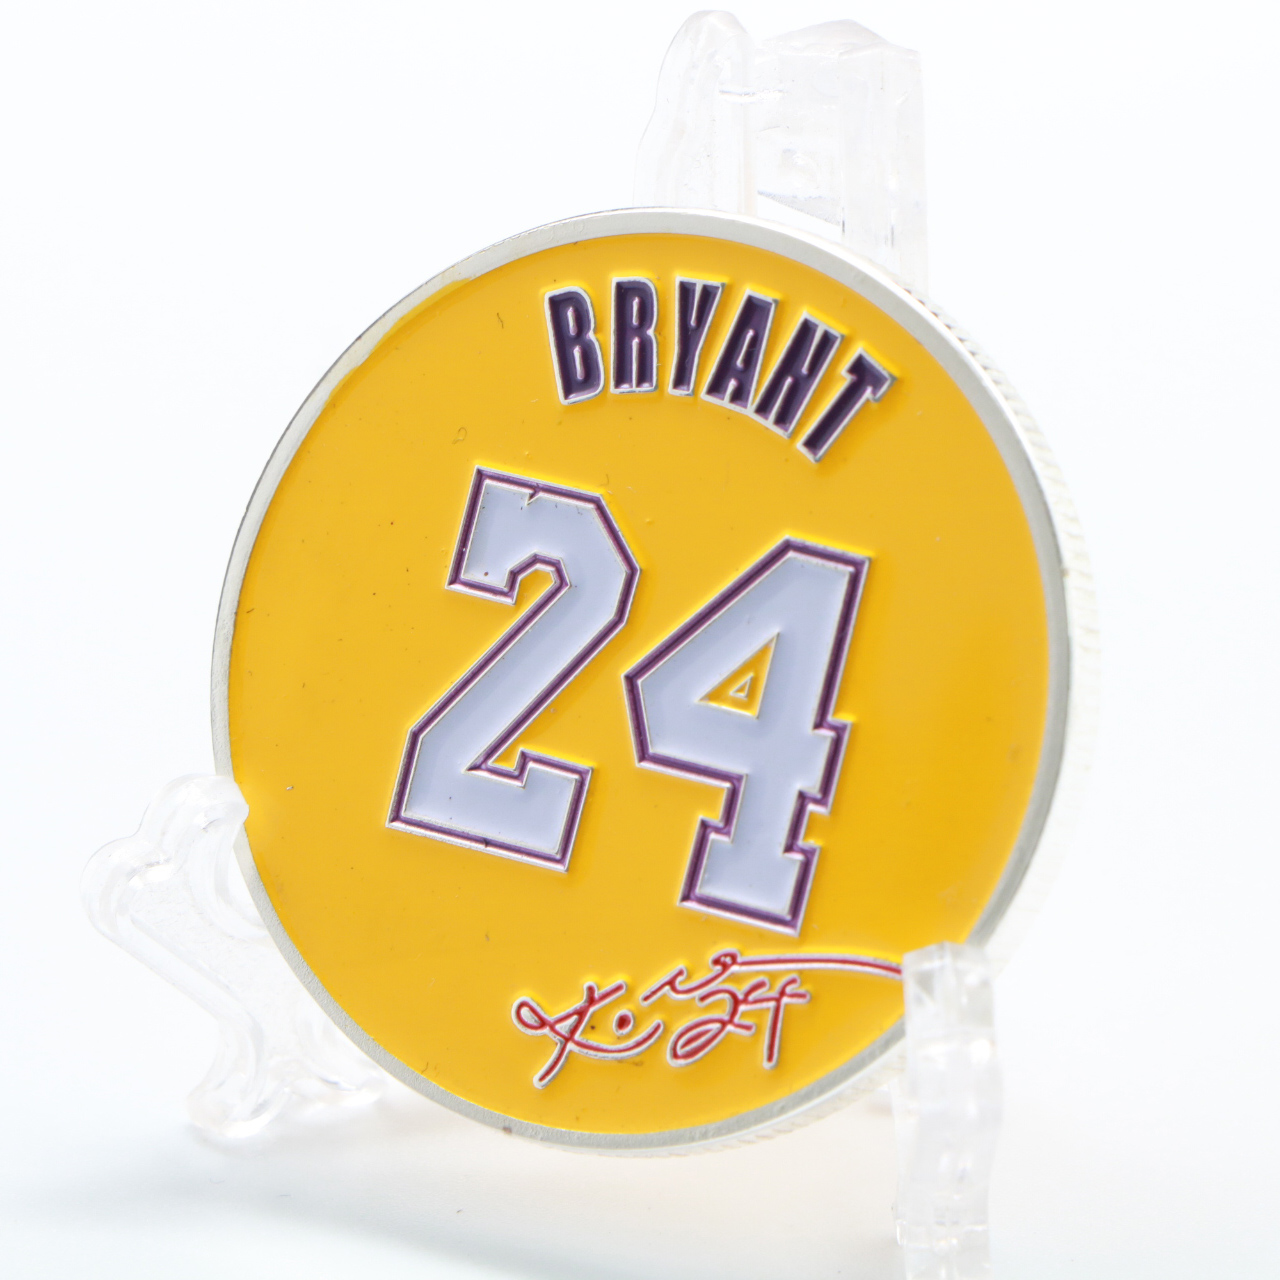 Kobe Bean Bryant Coin Collectibles Silver Gold Plated Metal Coins Home Decor For Collection Souvenir Gifts